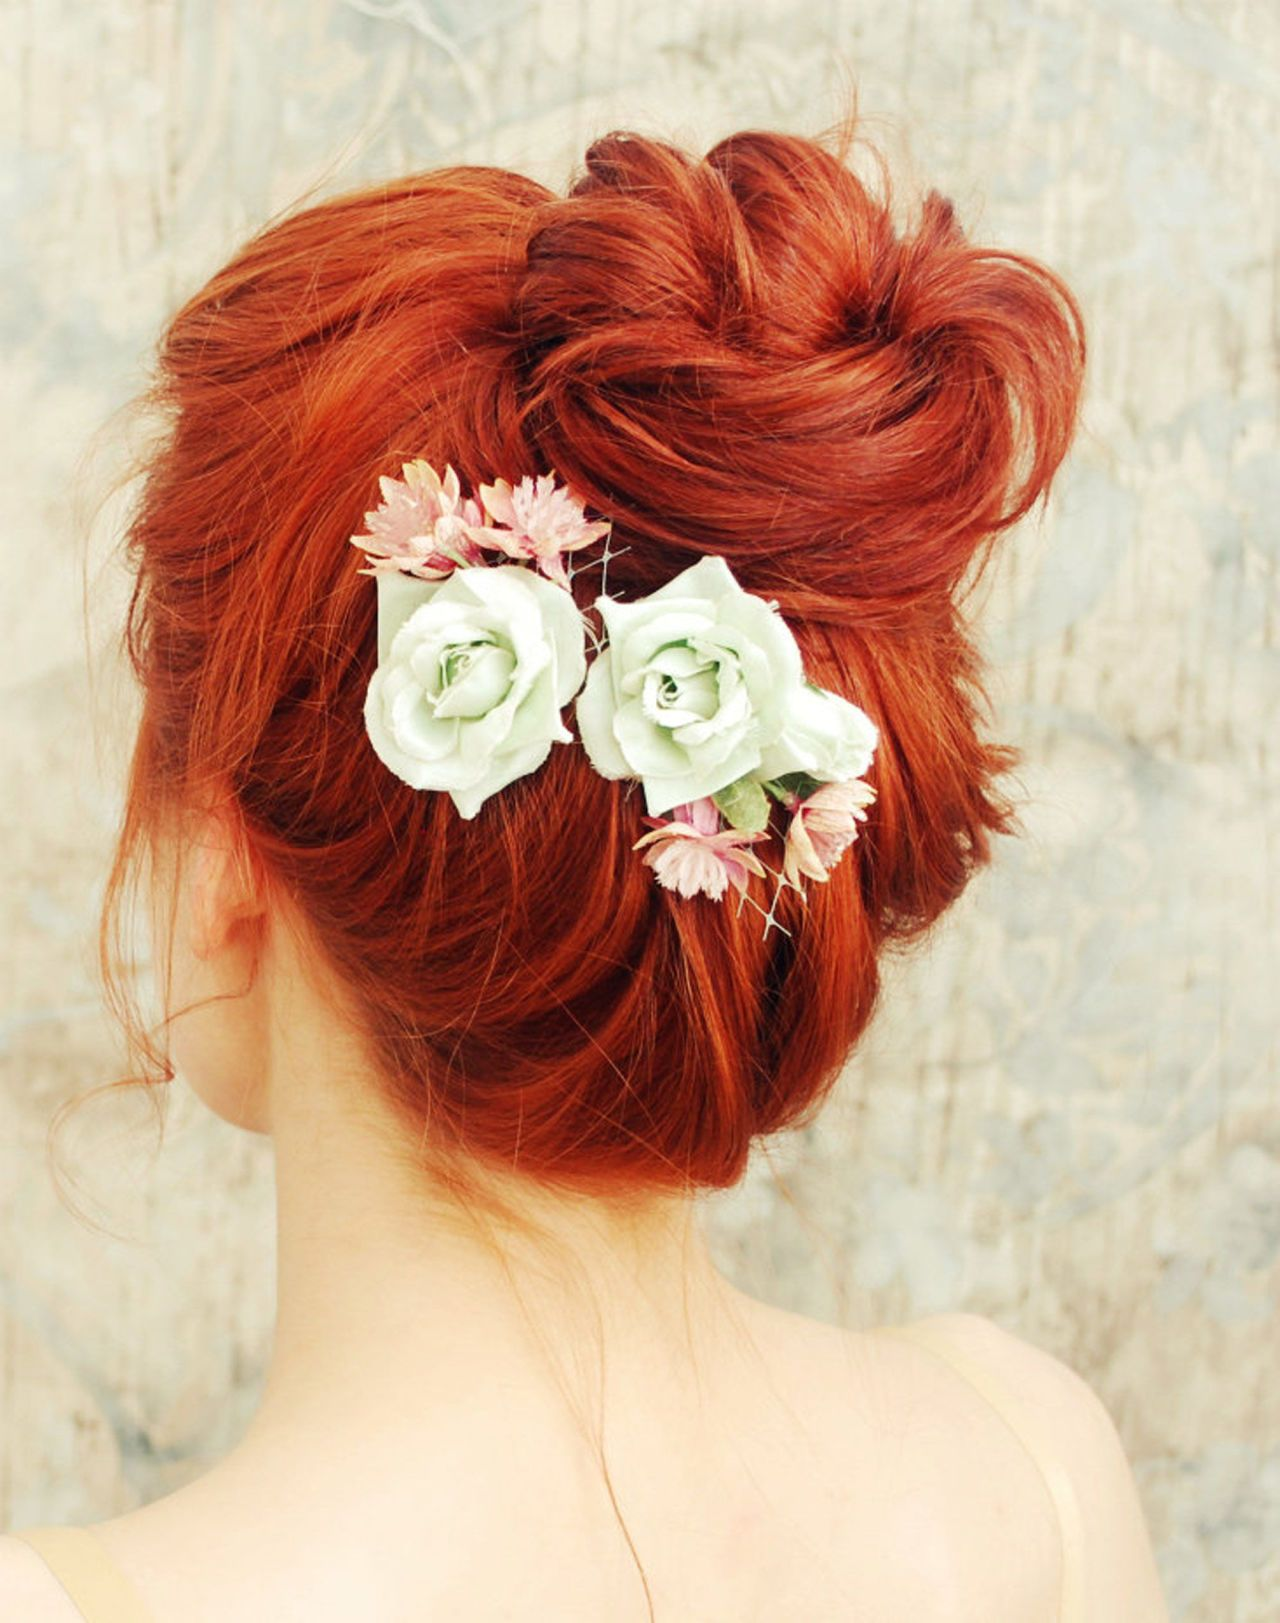 4 Stunning Ways to Wear Flowers in Your Hair on Your Wedding Day